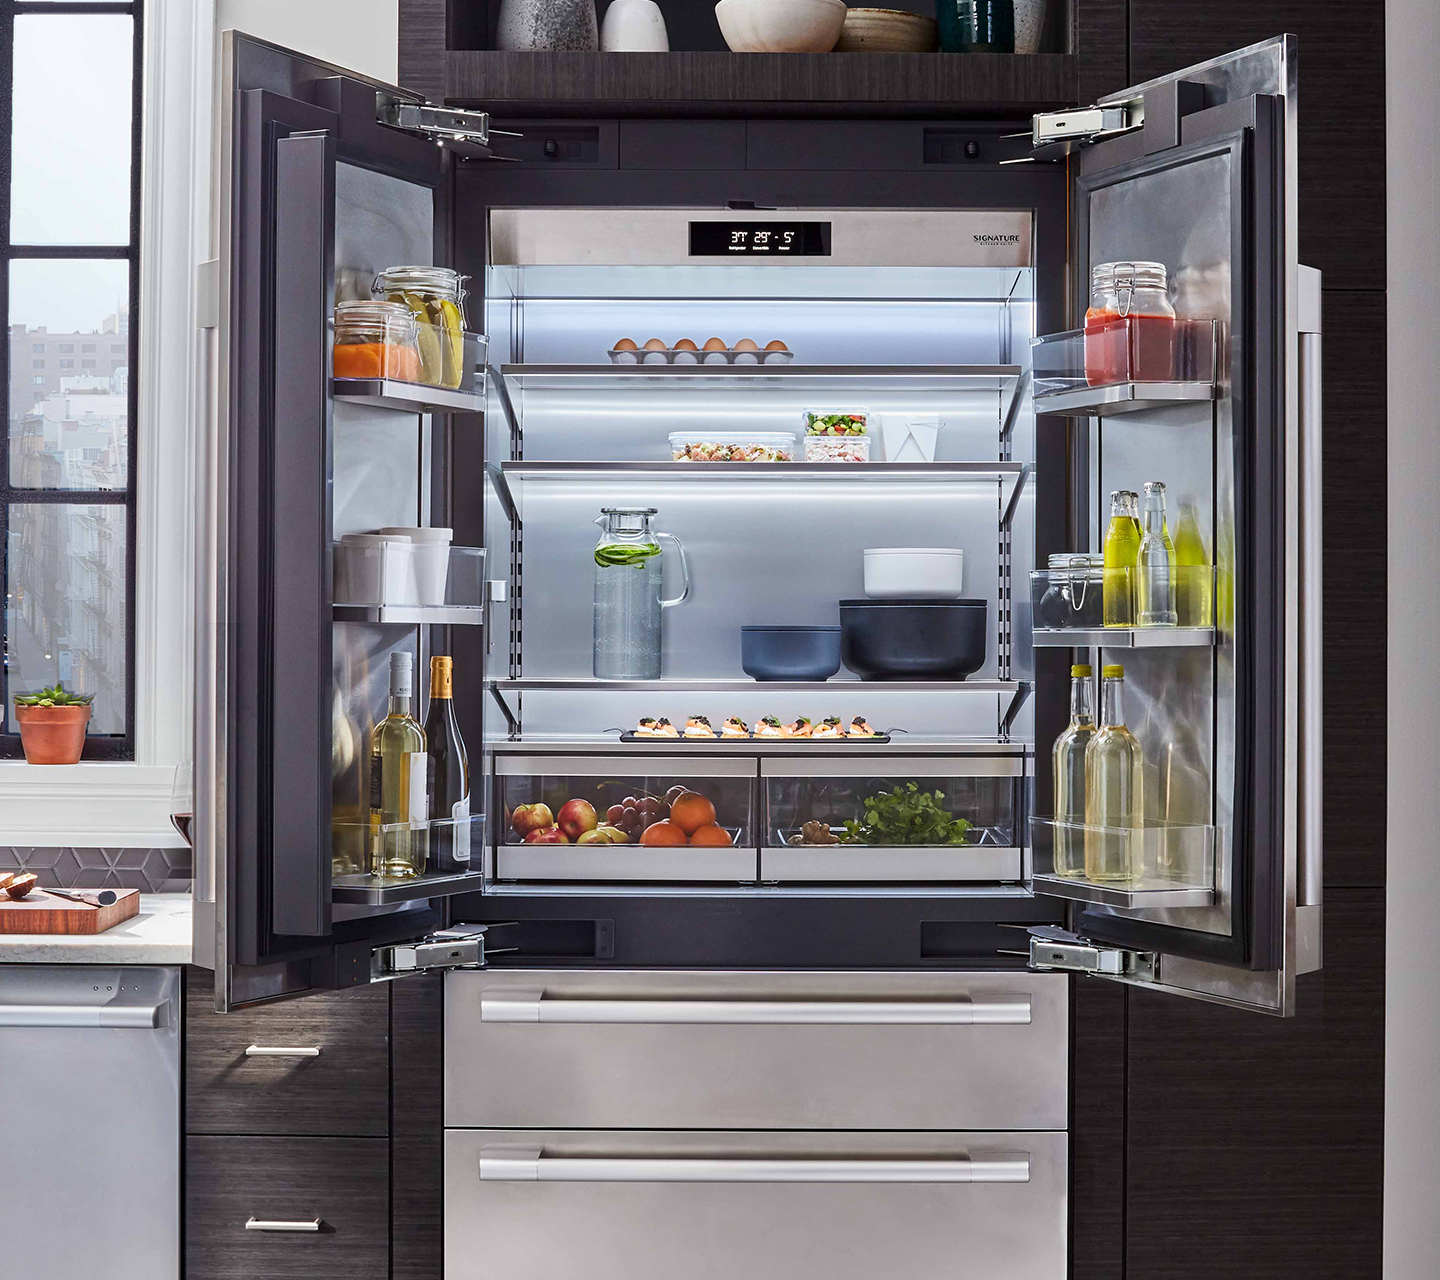 "36"" Built-in French Refrigerator 